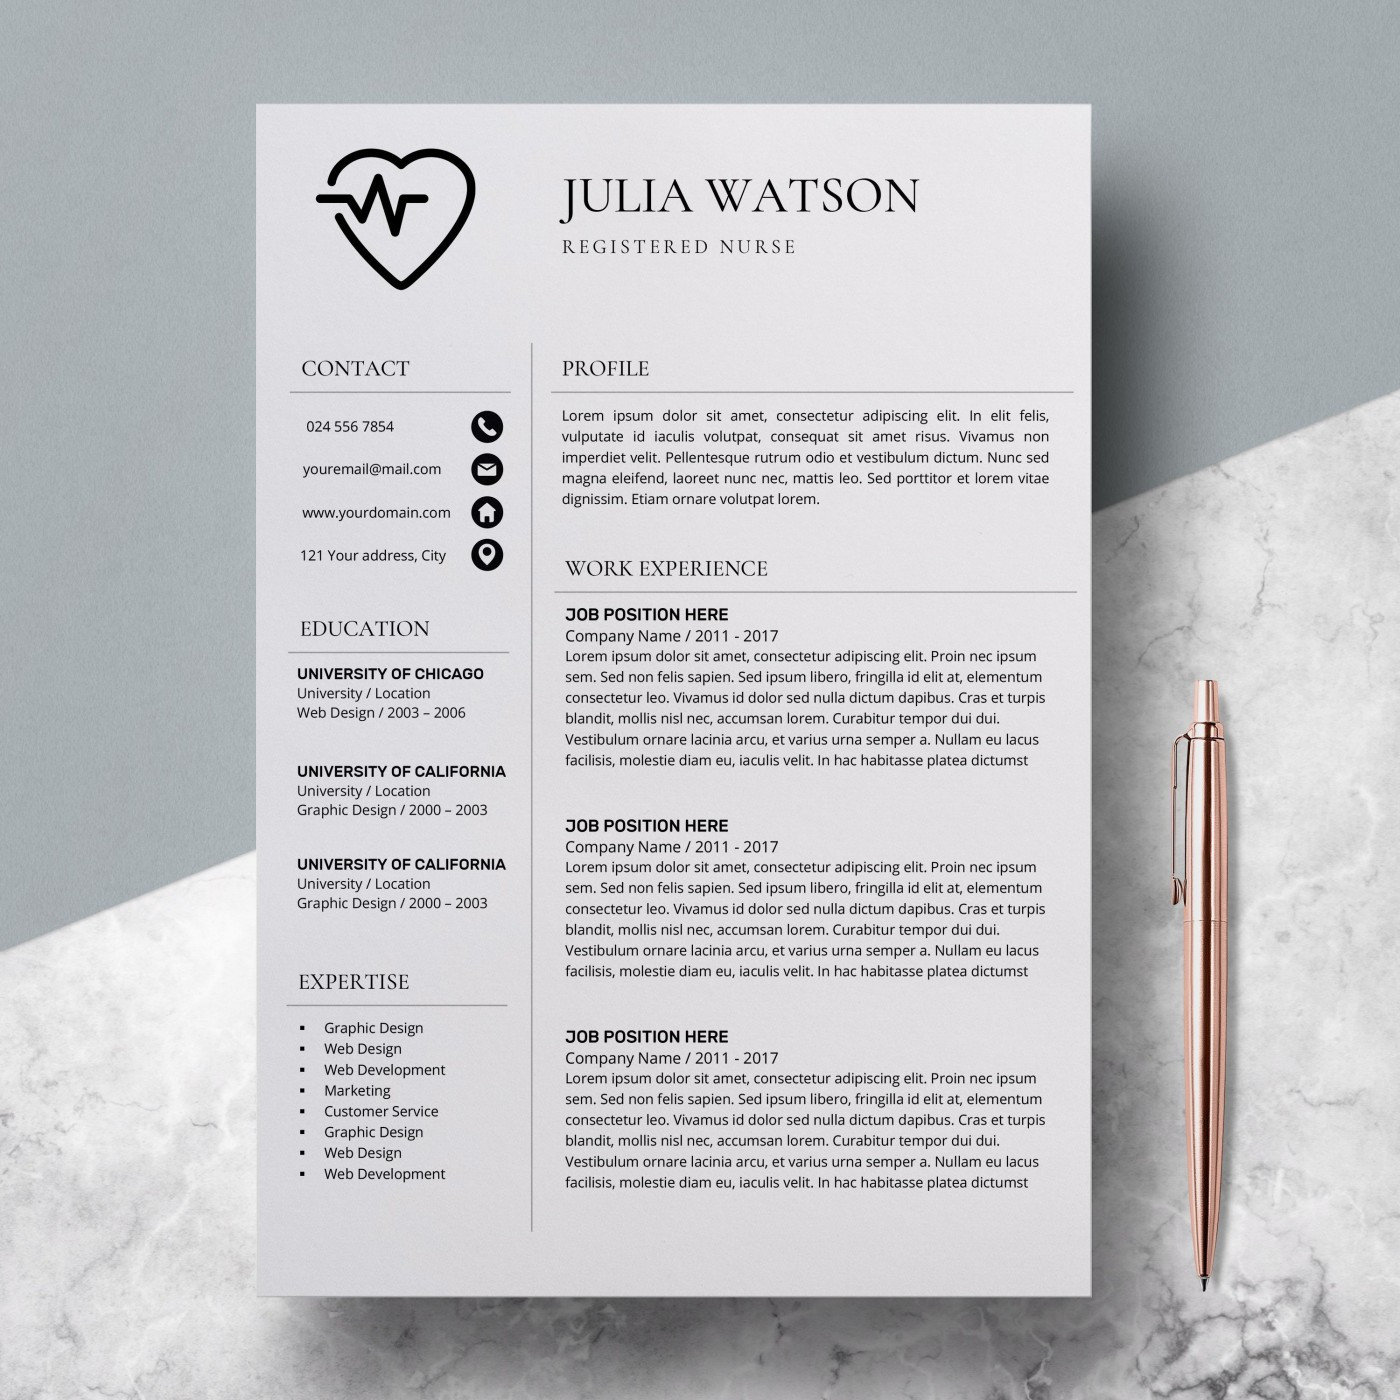 000 Unforgettable Resume Template For Nurse Design  Sample Nursing Assistant With No Experience Rn' Free1400